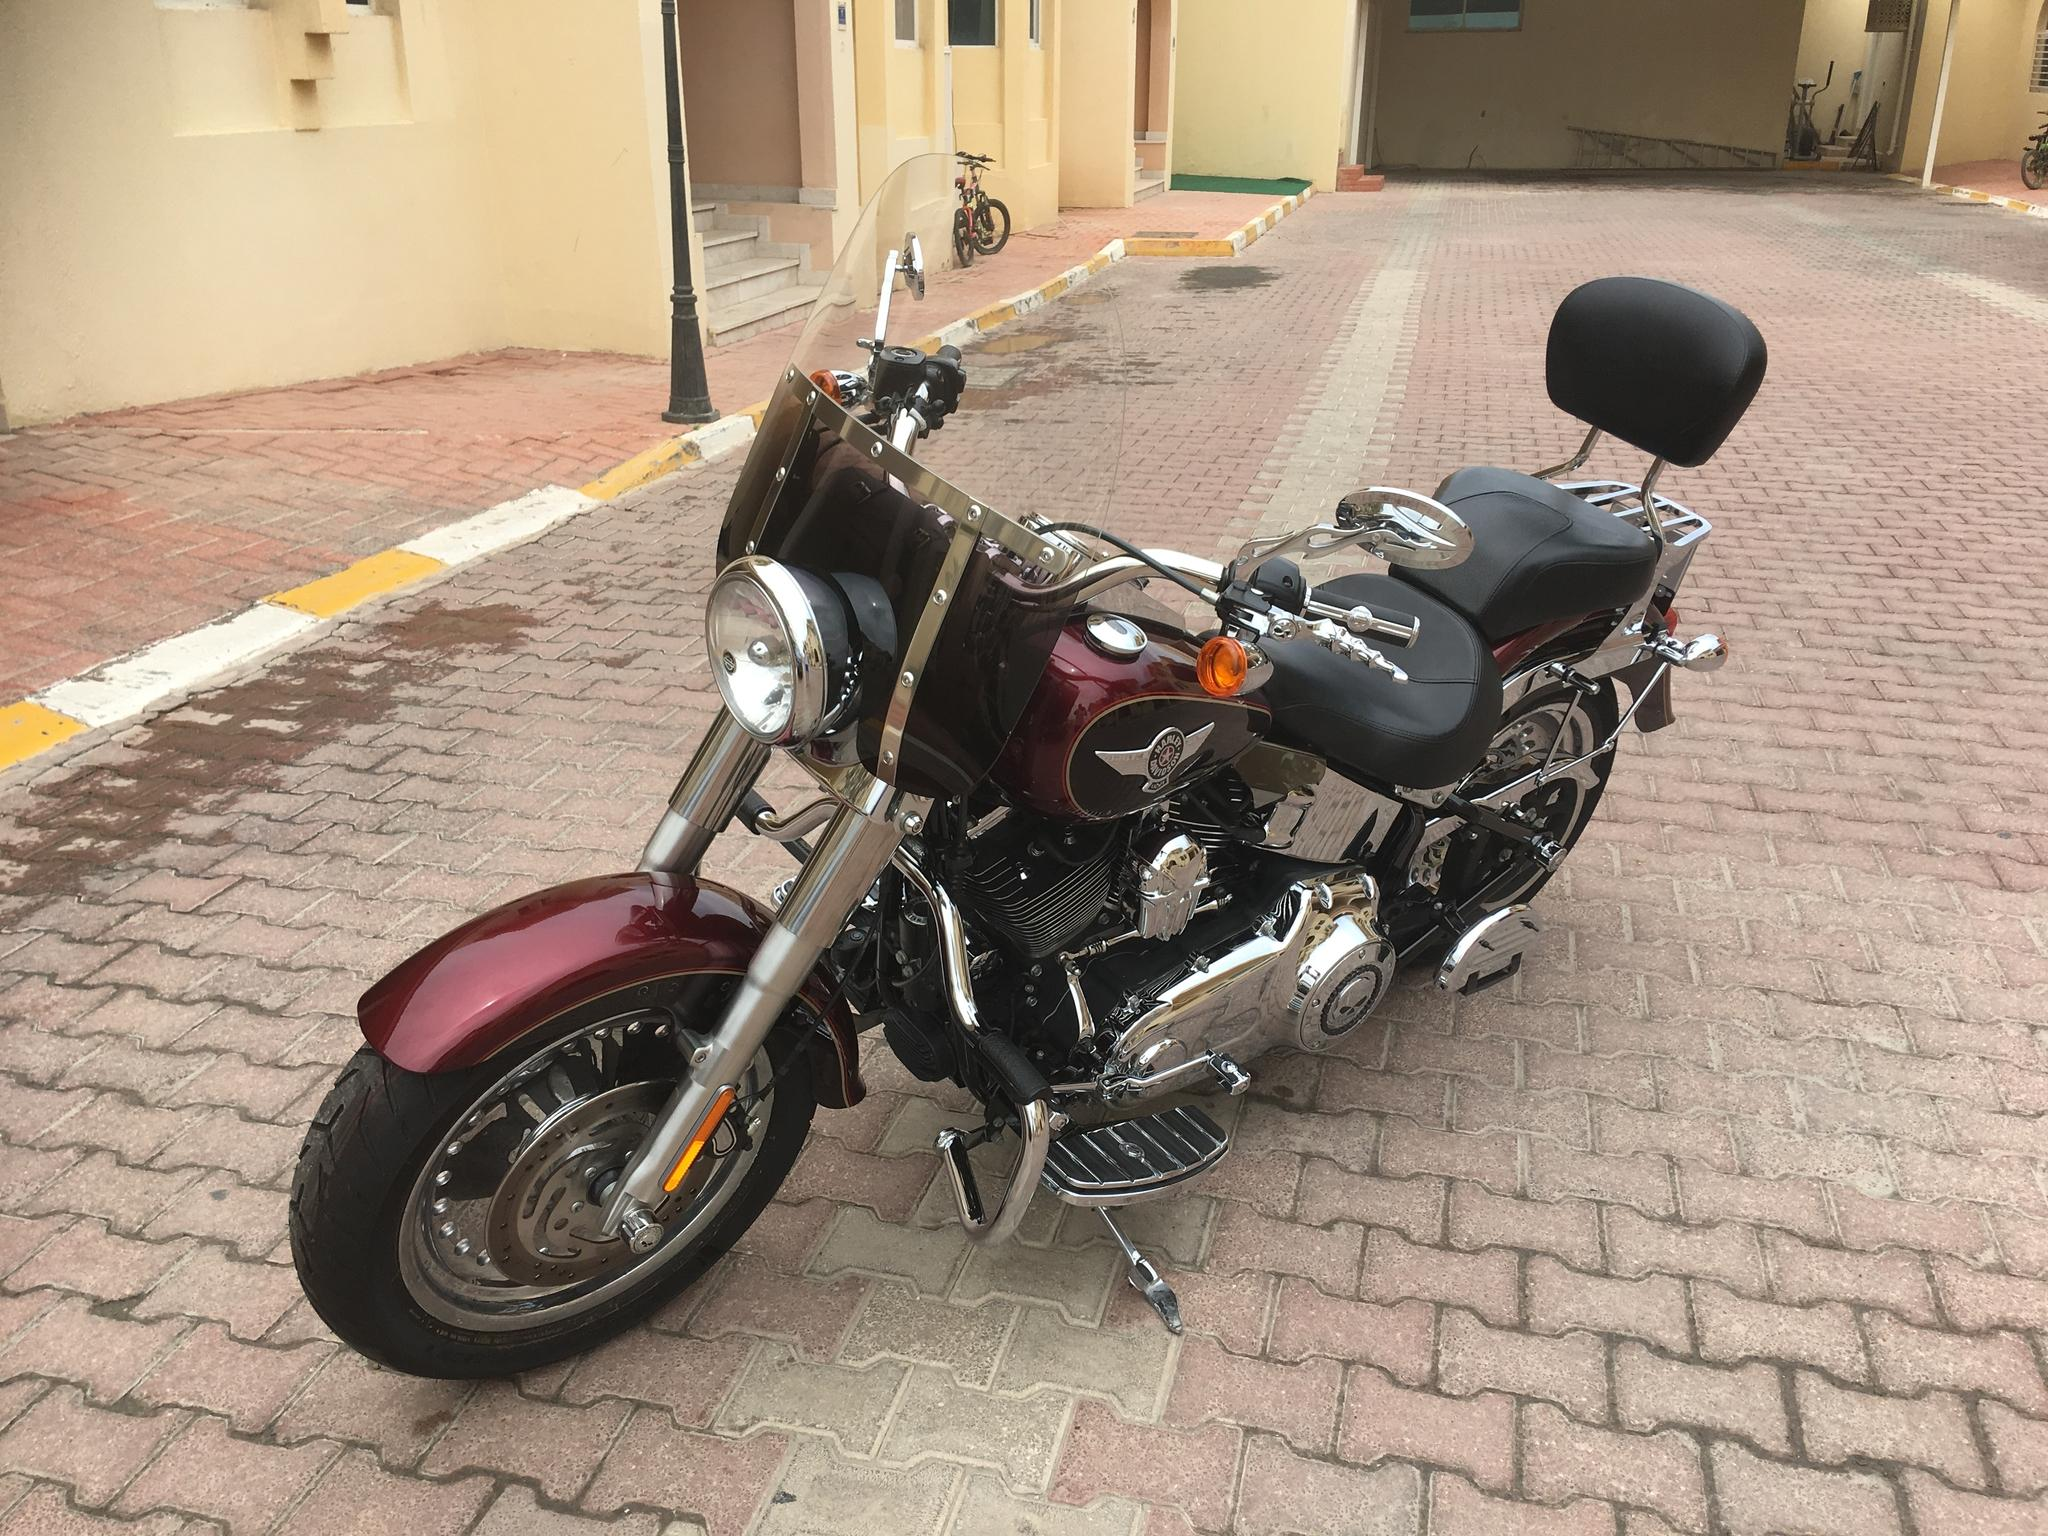 Fully equipped Harley Fat Boy in perfect condition